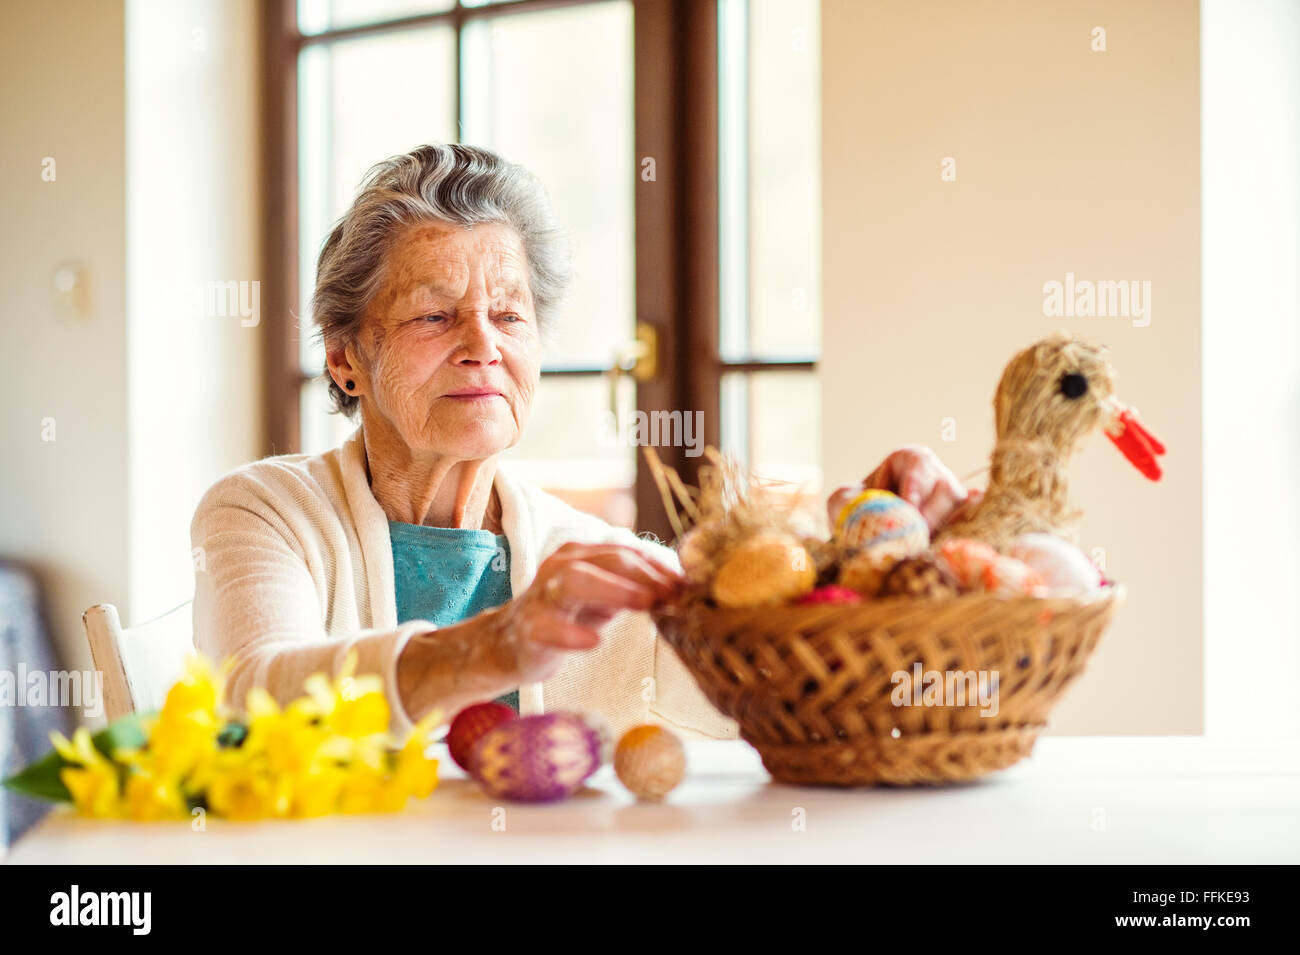 Senior woman arranging basket with Easter eggs and daffodils Stock Photo